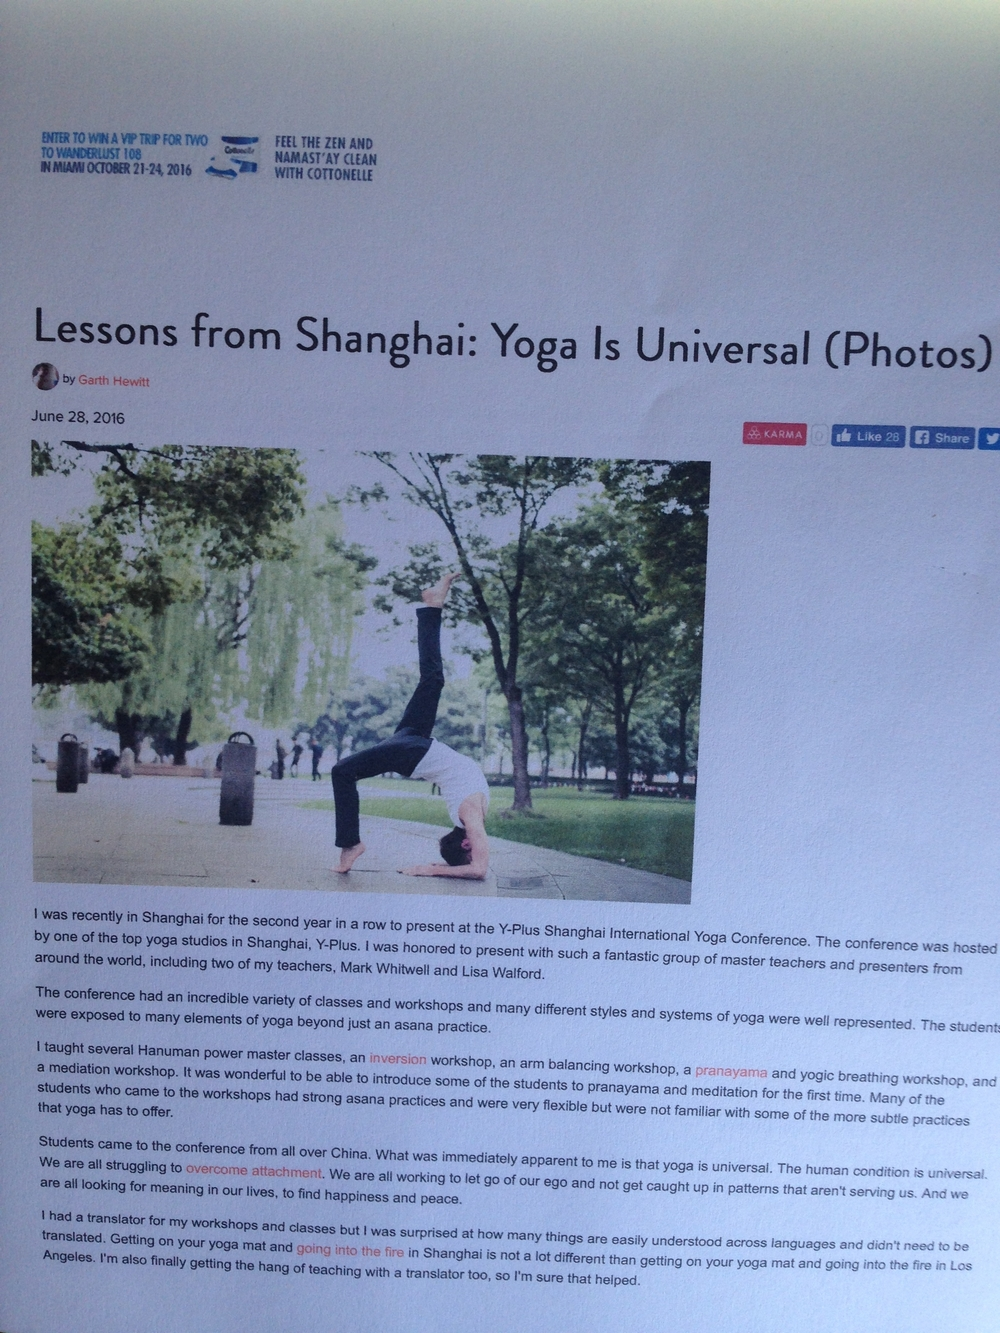 Lessons from Shanghai:  Yoga is Universal by Garth Hewitt